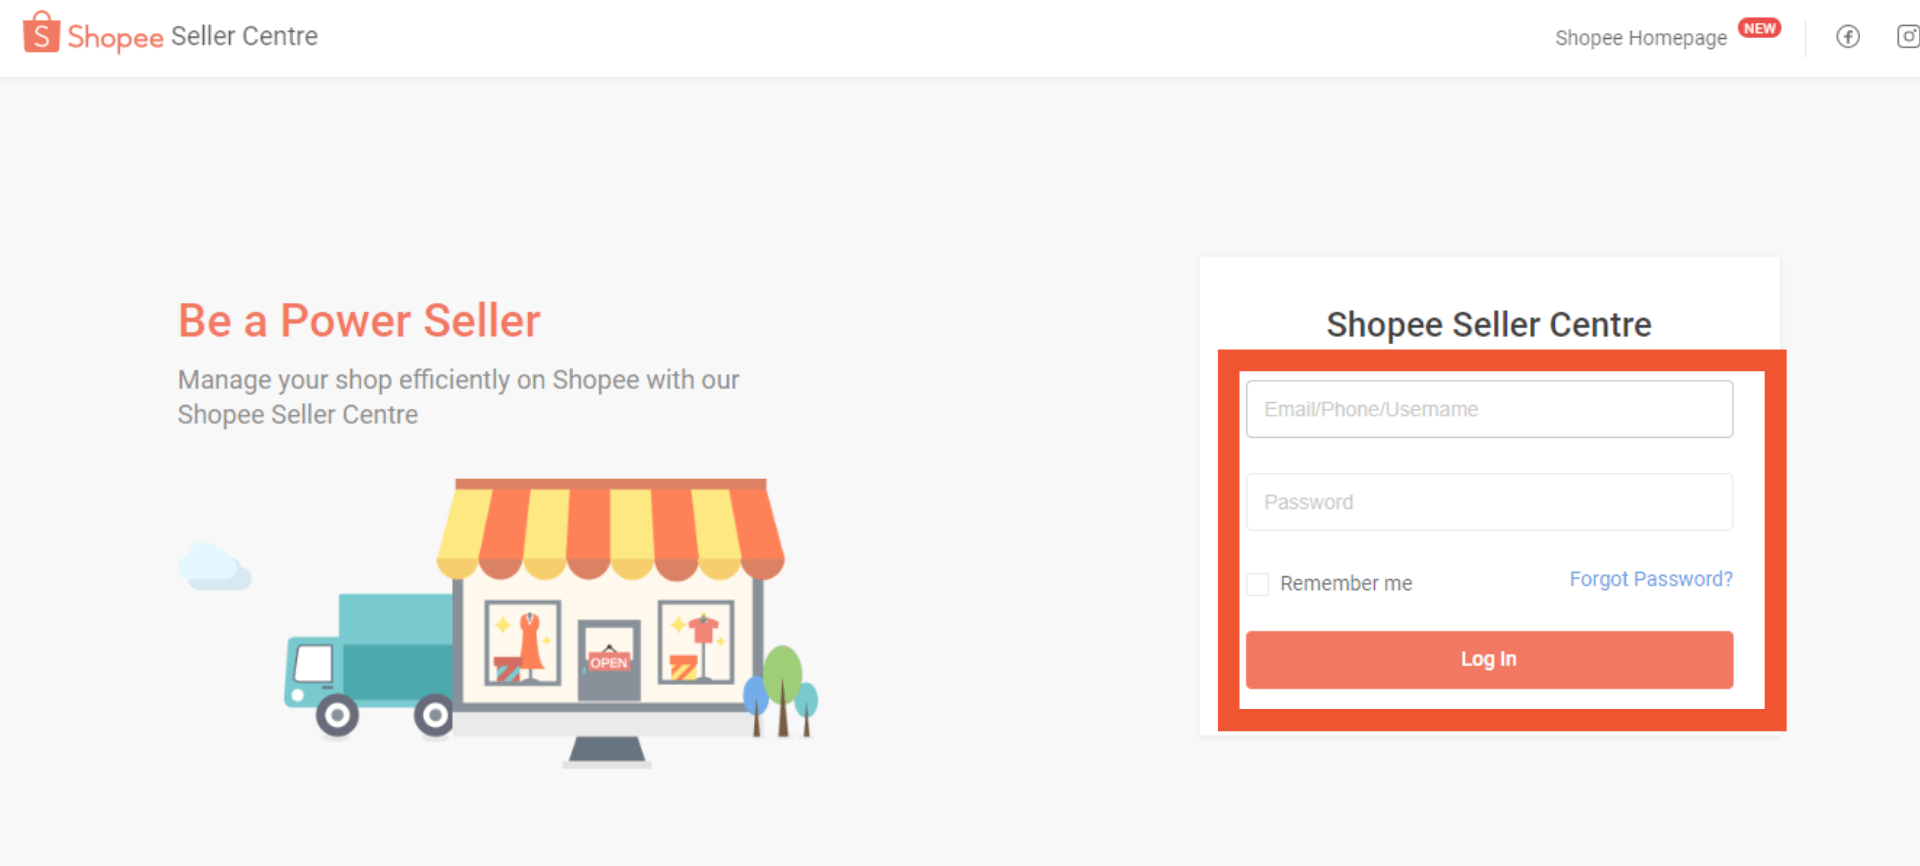 Shopee Advertising - How to Choose Keywords and Optimize Shopee My Ads